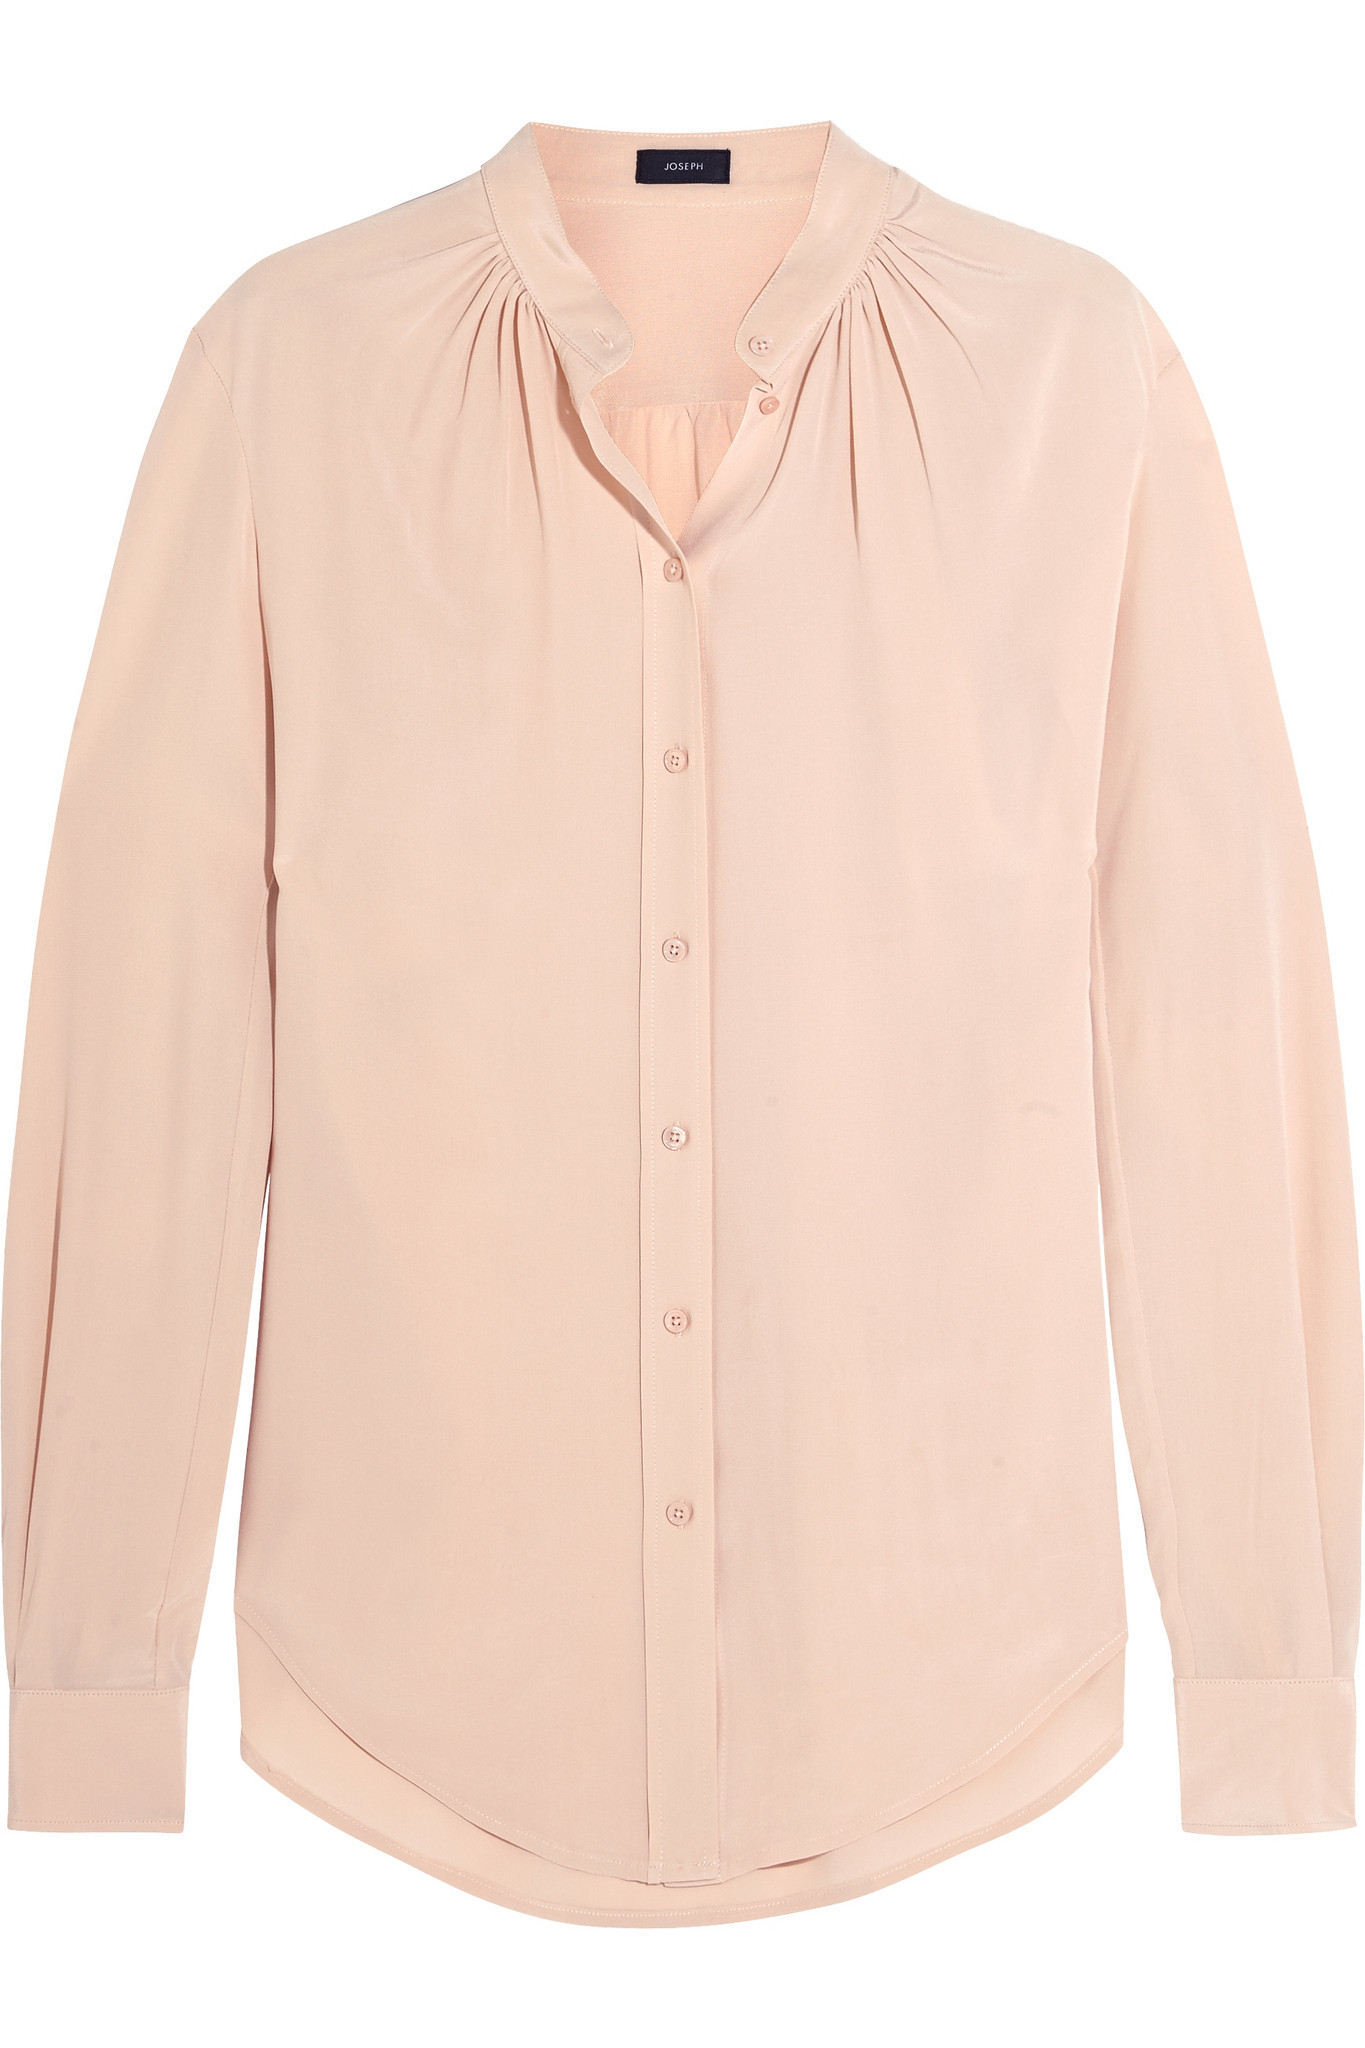 63335708e0f8d JOSEPH Carly Silk Crepe De Chine Blouse in Pink - Lyst